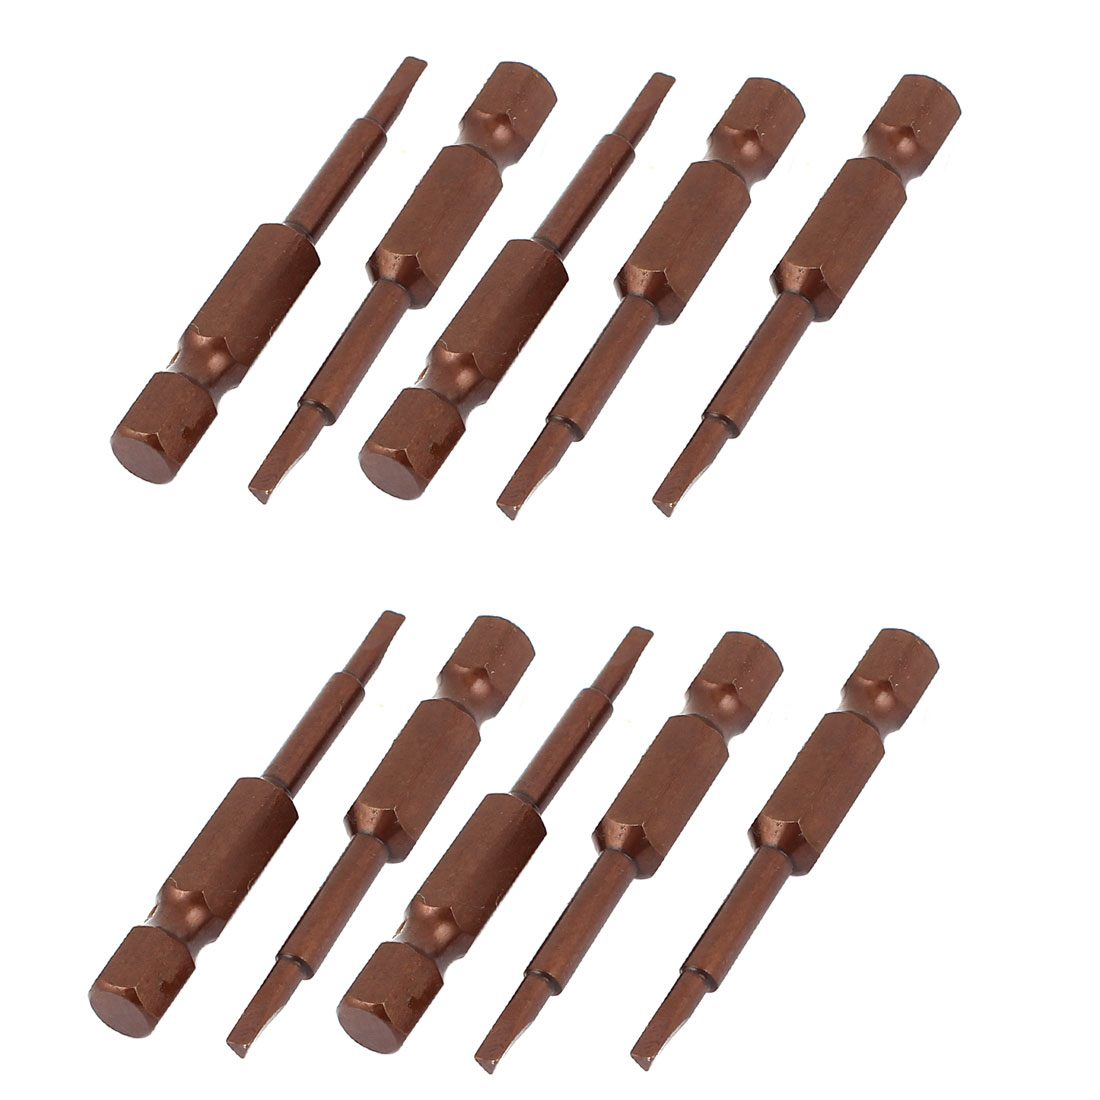 "10Pcs 1/4"" Hex Shank 2mm Magnetic Tip Triangle Screwdriver Bits 50mm Length"